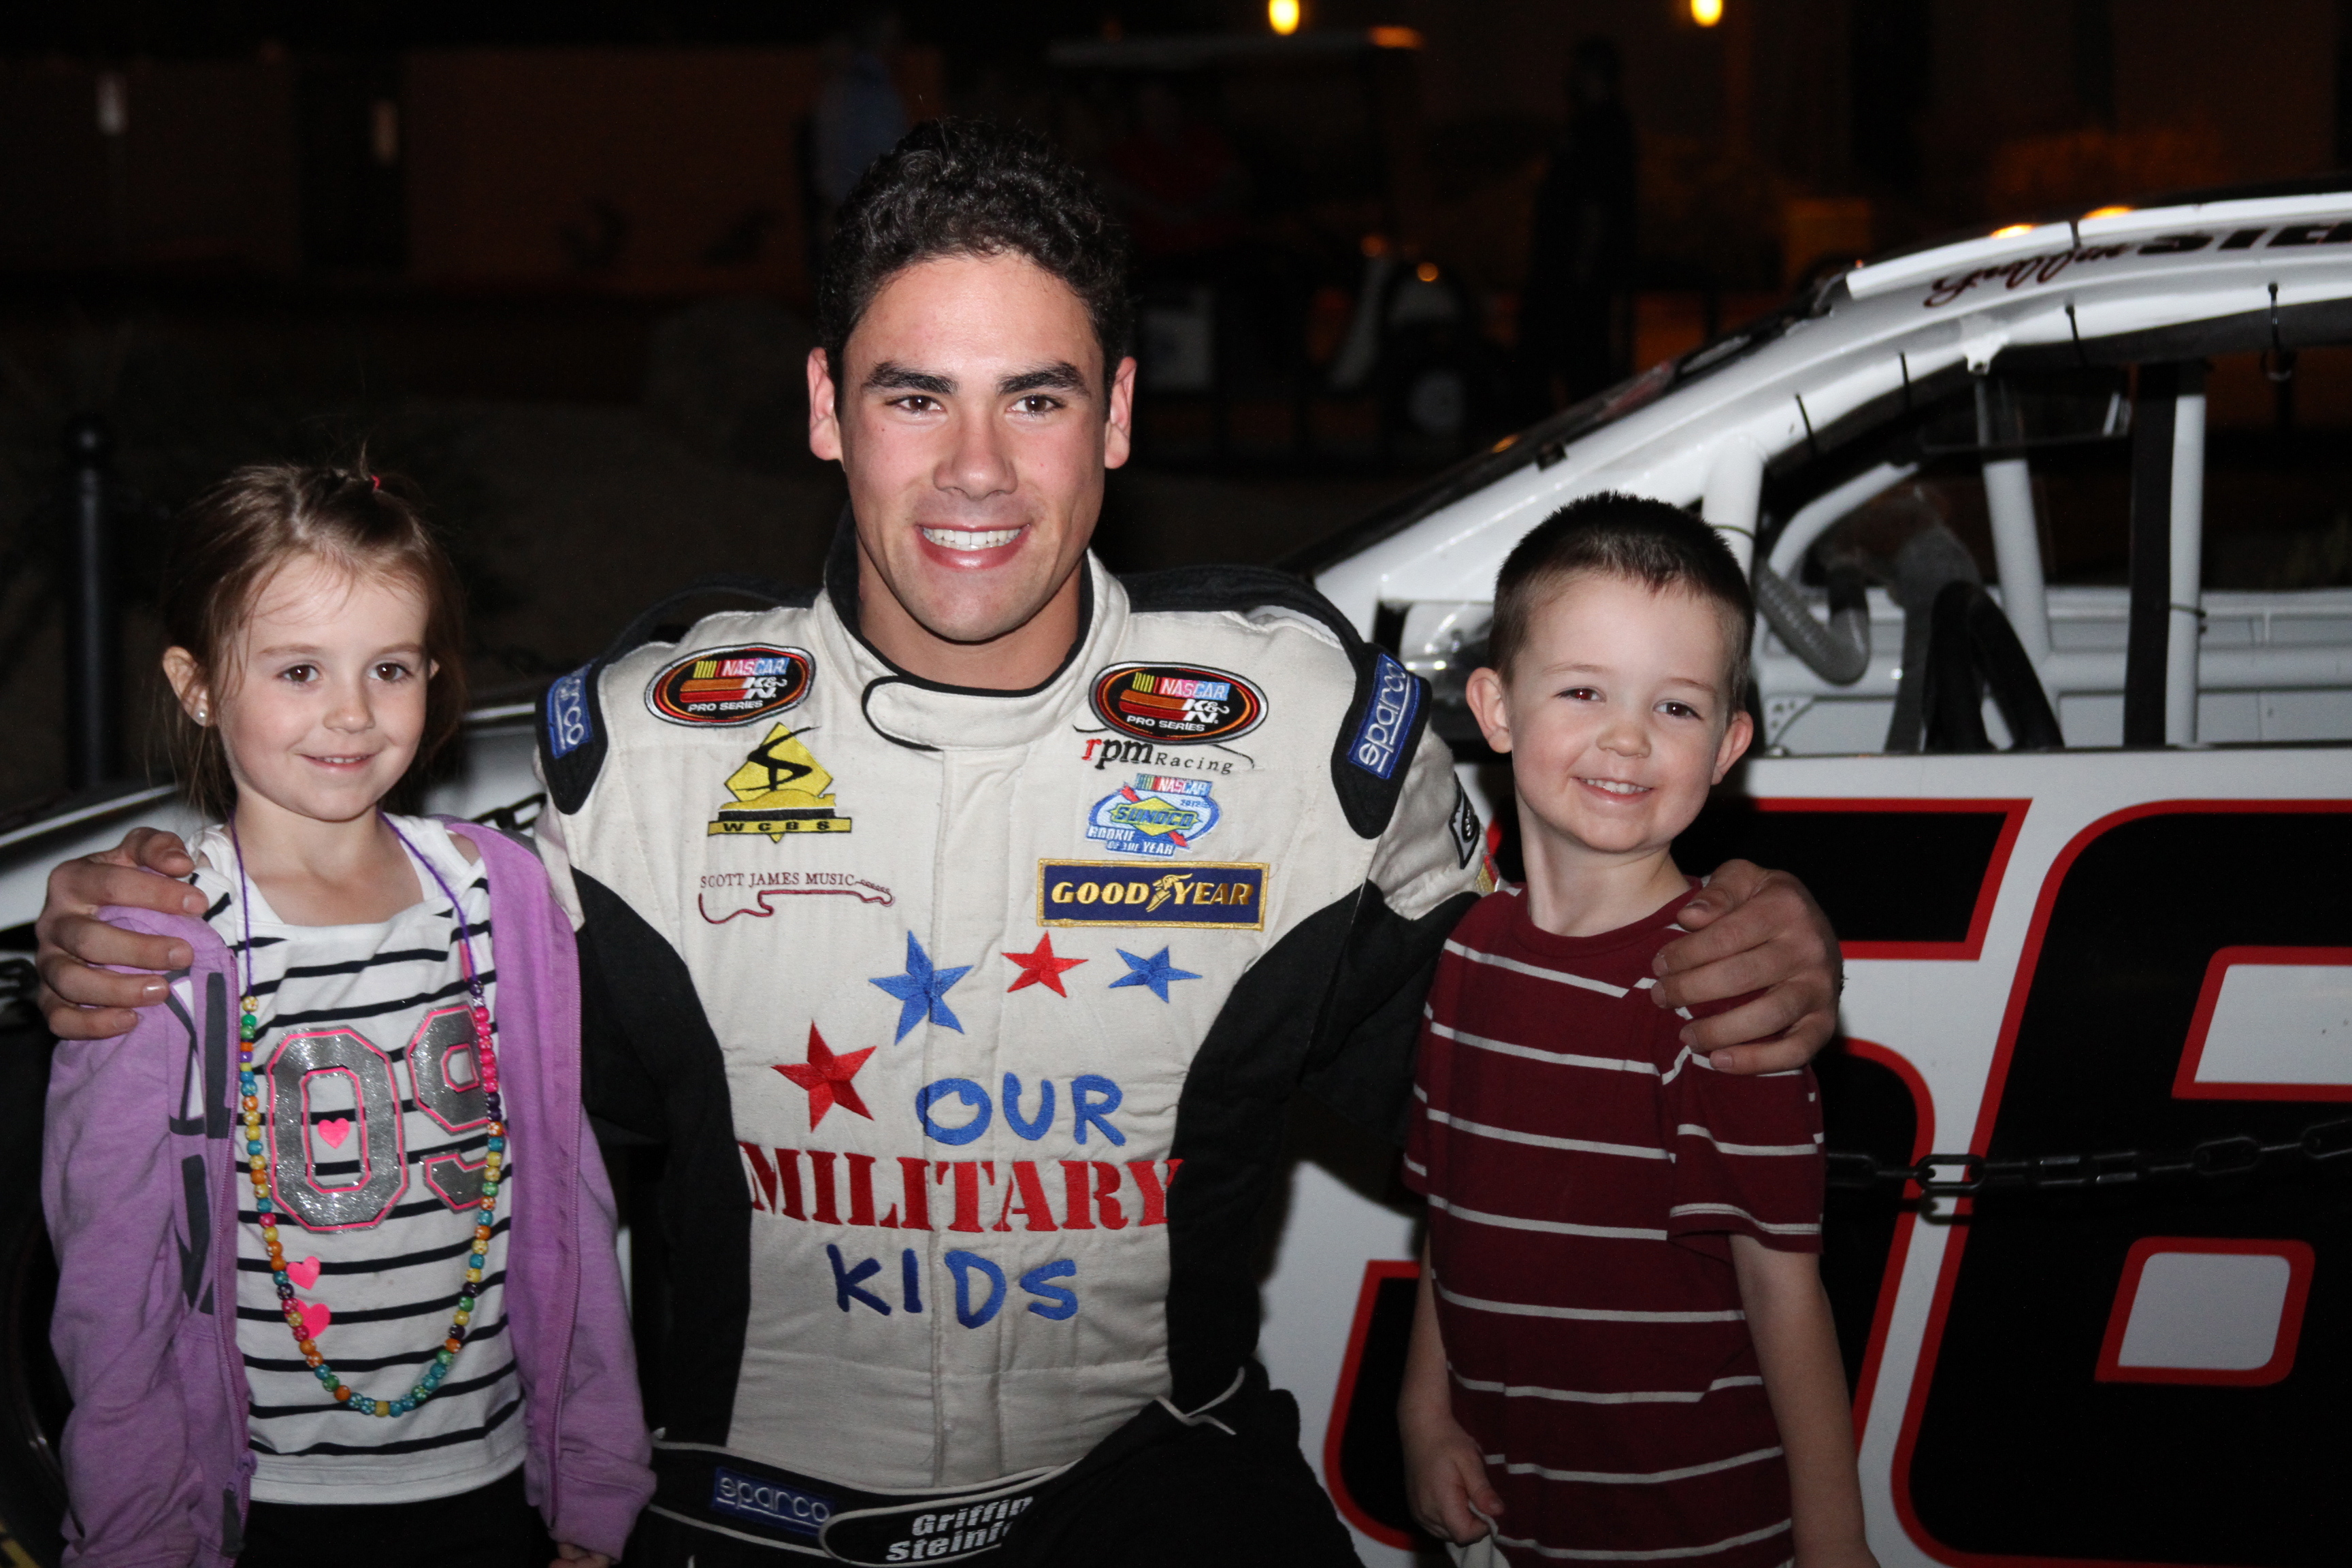 Our Military Kids and NASCAR, Supporting Military Kids